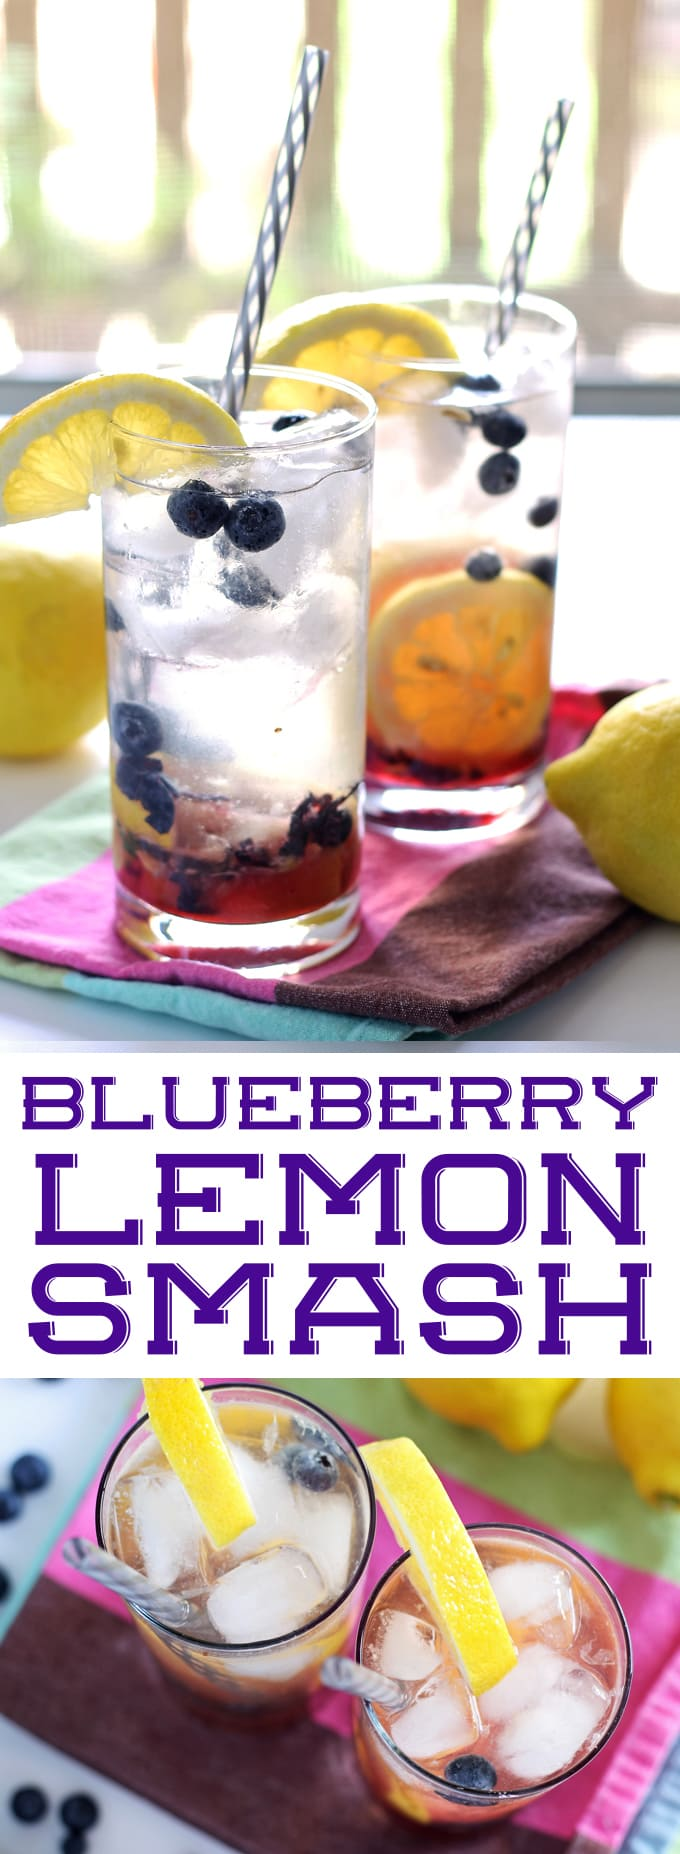 Blueberry Lemon Smash Rum Cocktail | honeyandbirch.com